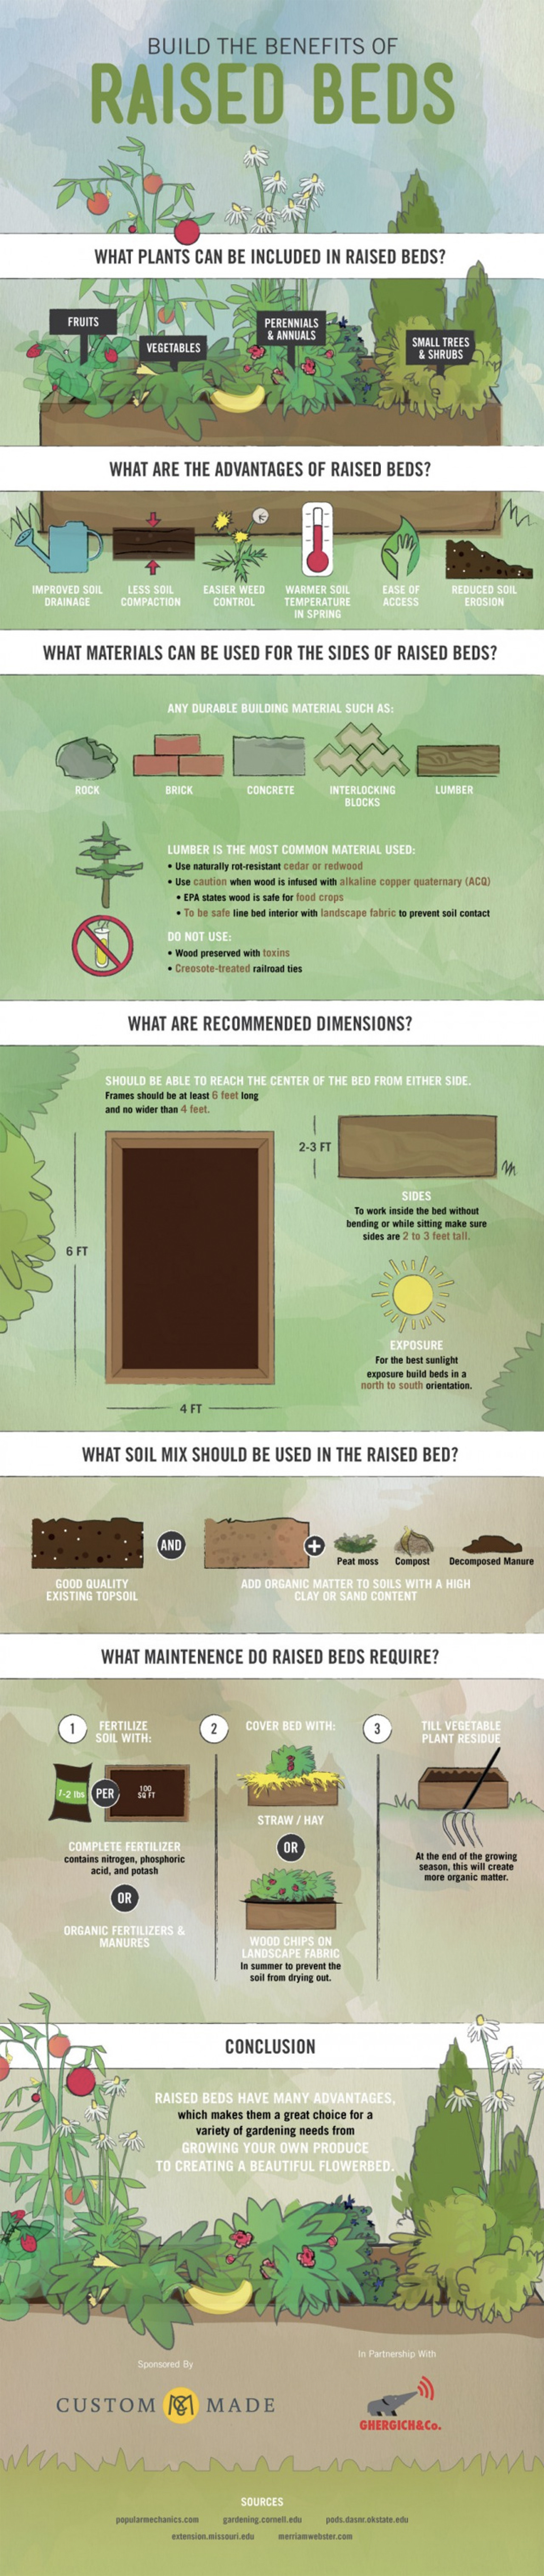 Build the Benefits of a Raised Bed